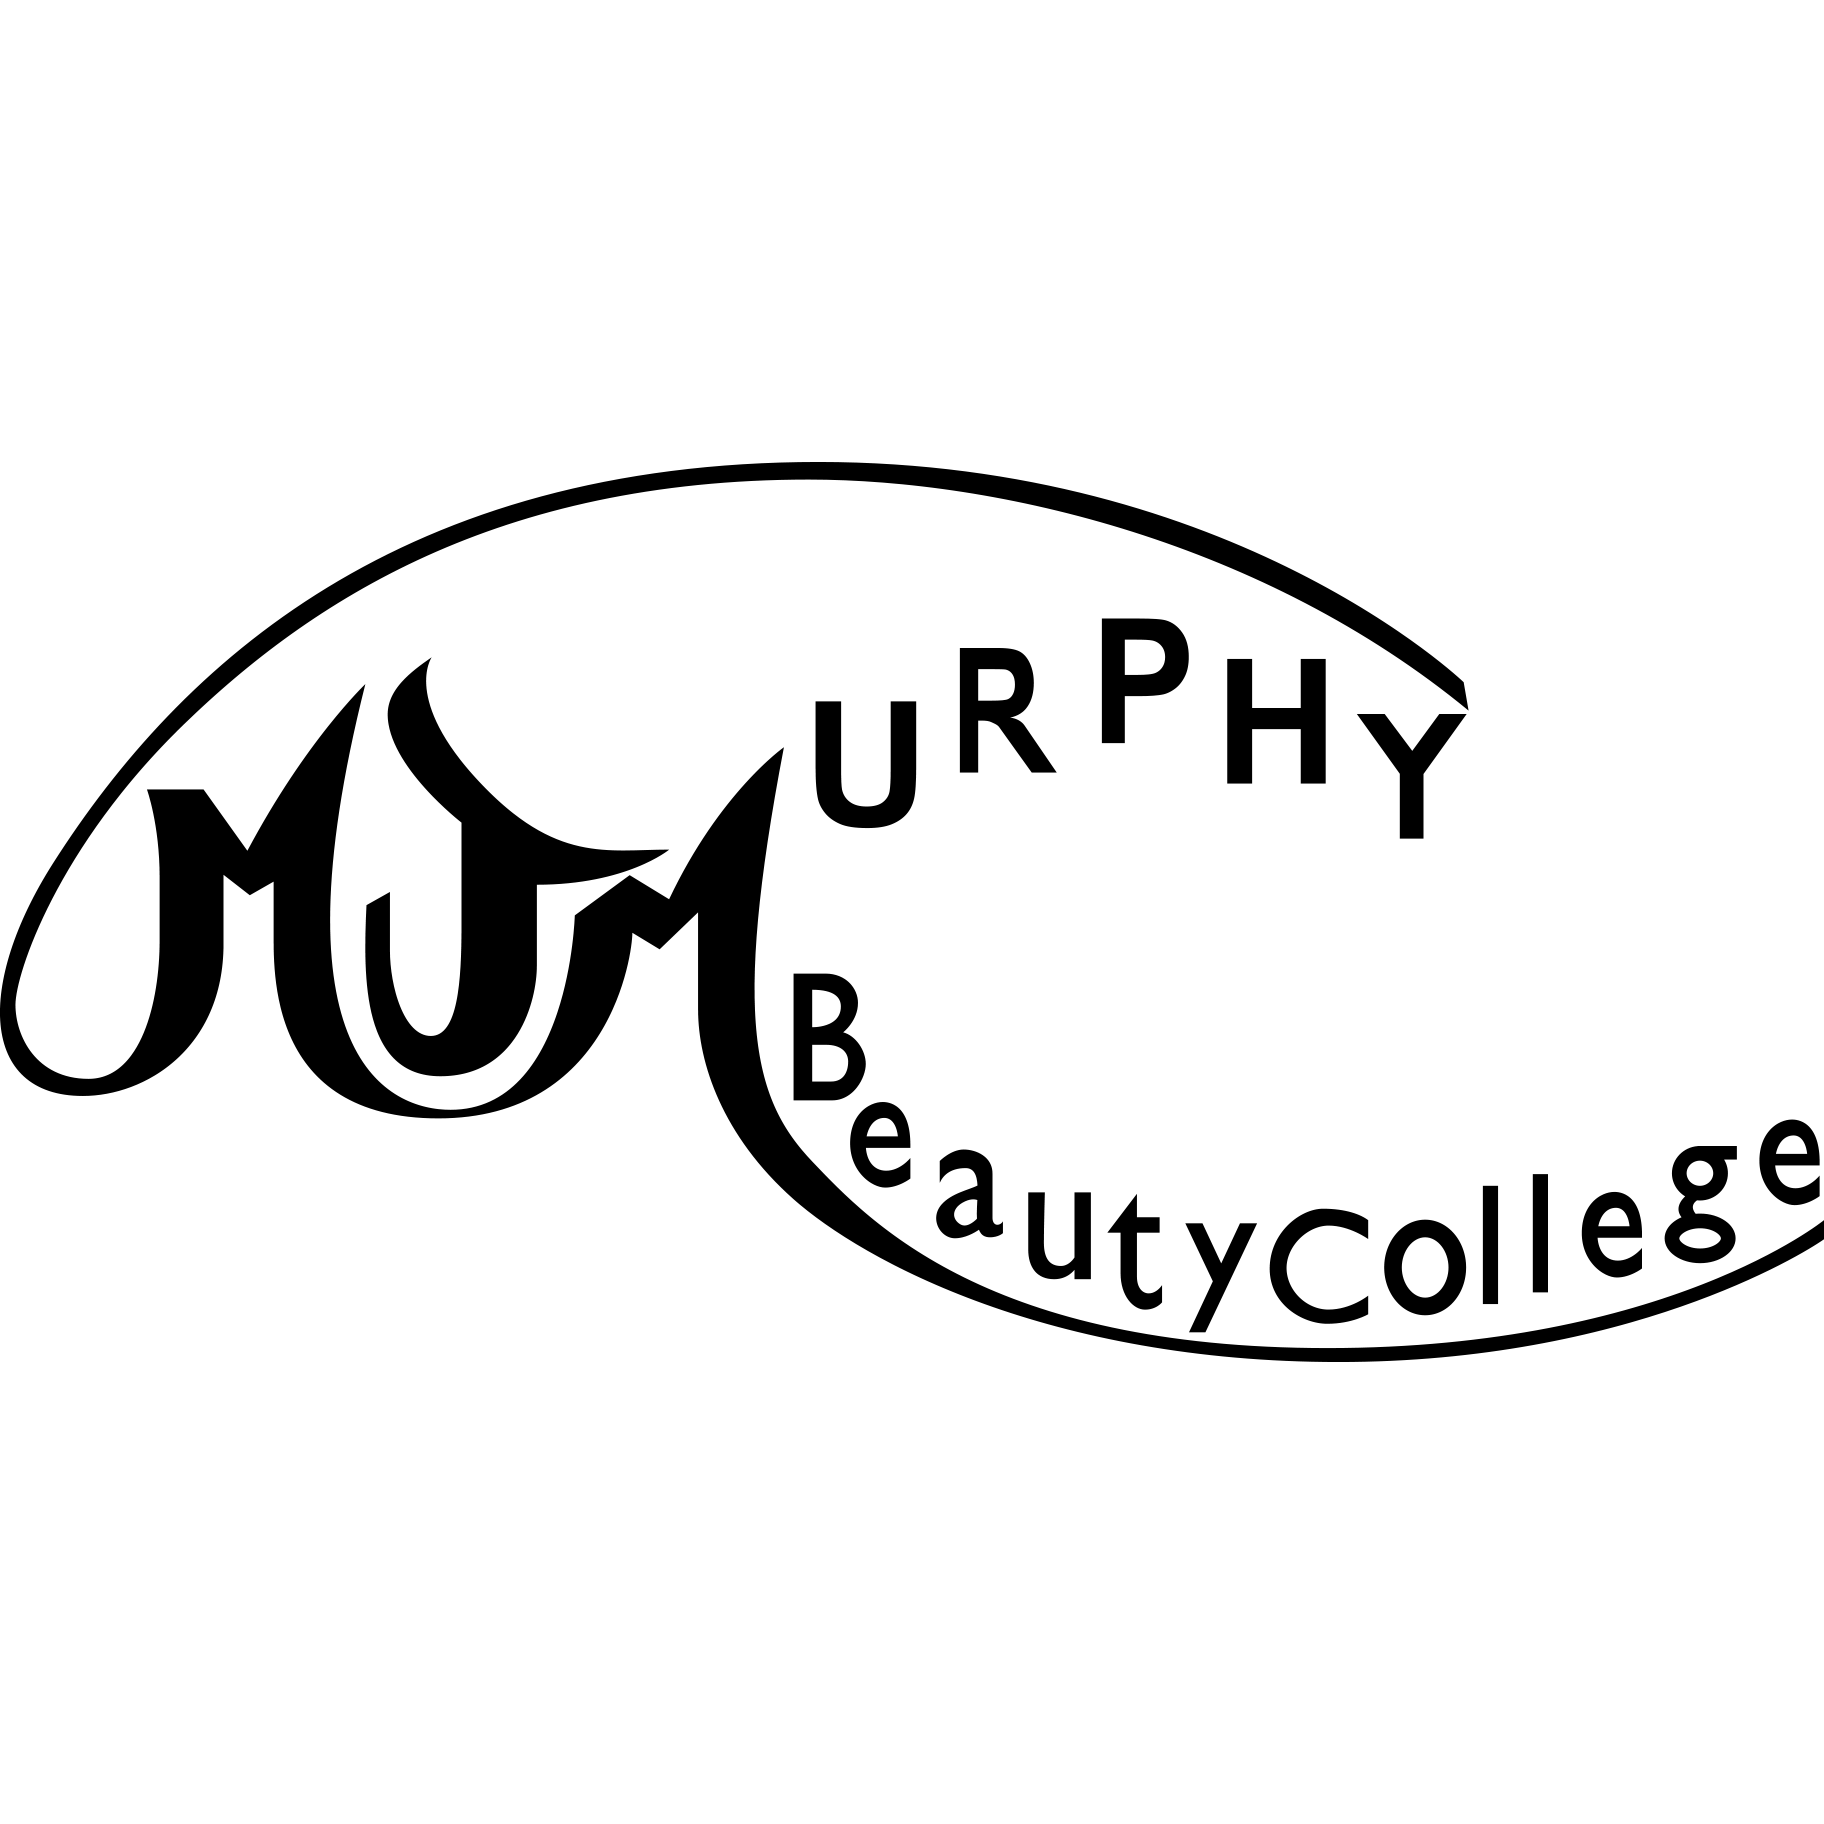 M J Murphy Beauty College of Mt. Pleasant - Mount Pleasant, MI - Beauty Salons & Hair Care